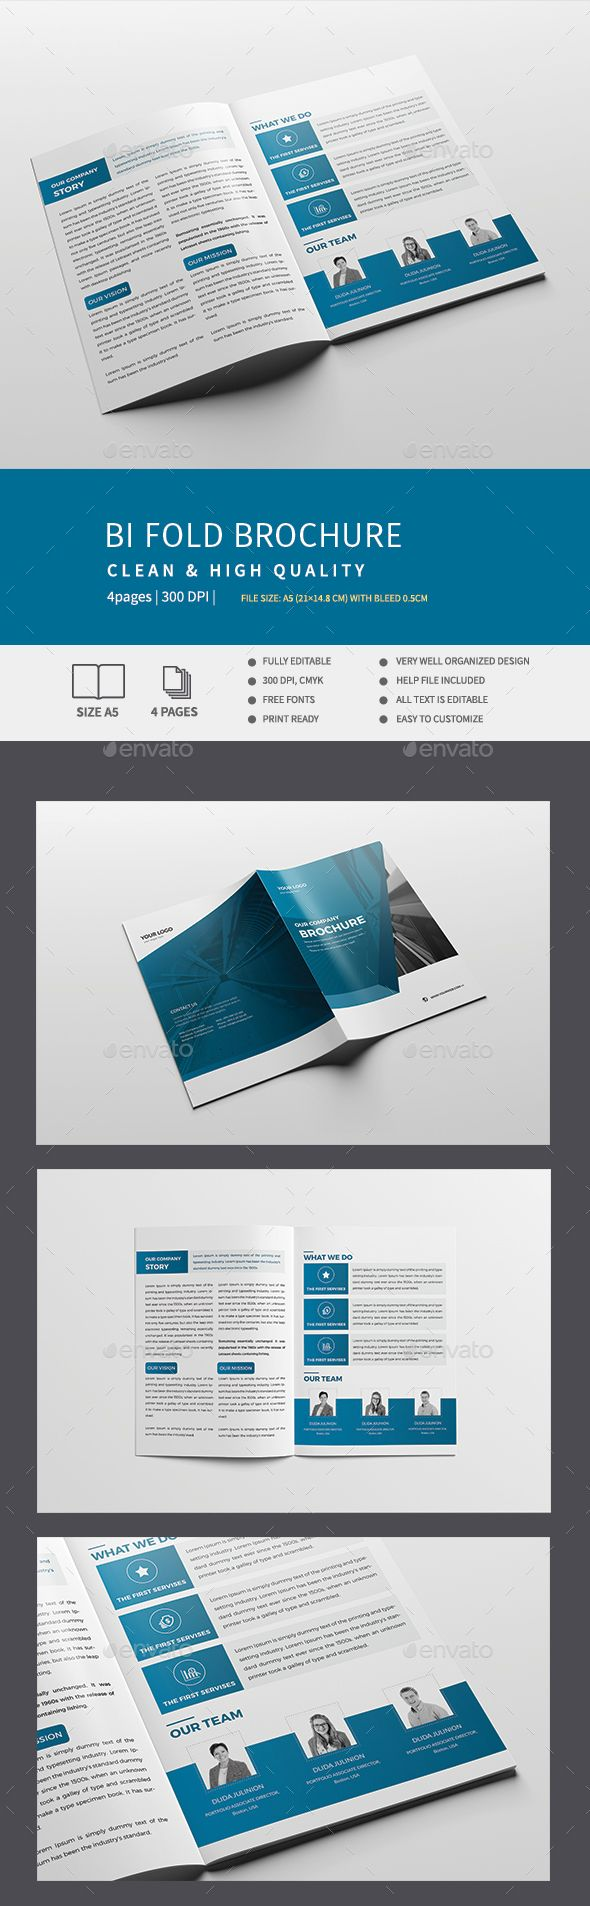 Corporate Bi-Fold Brochure | Brochures, Brochure template and Template